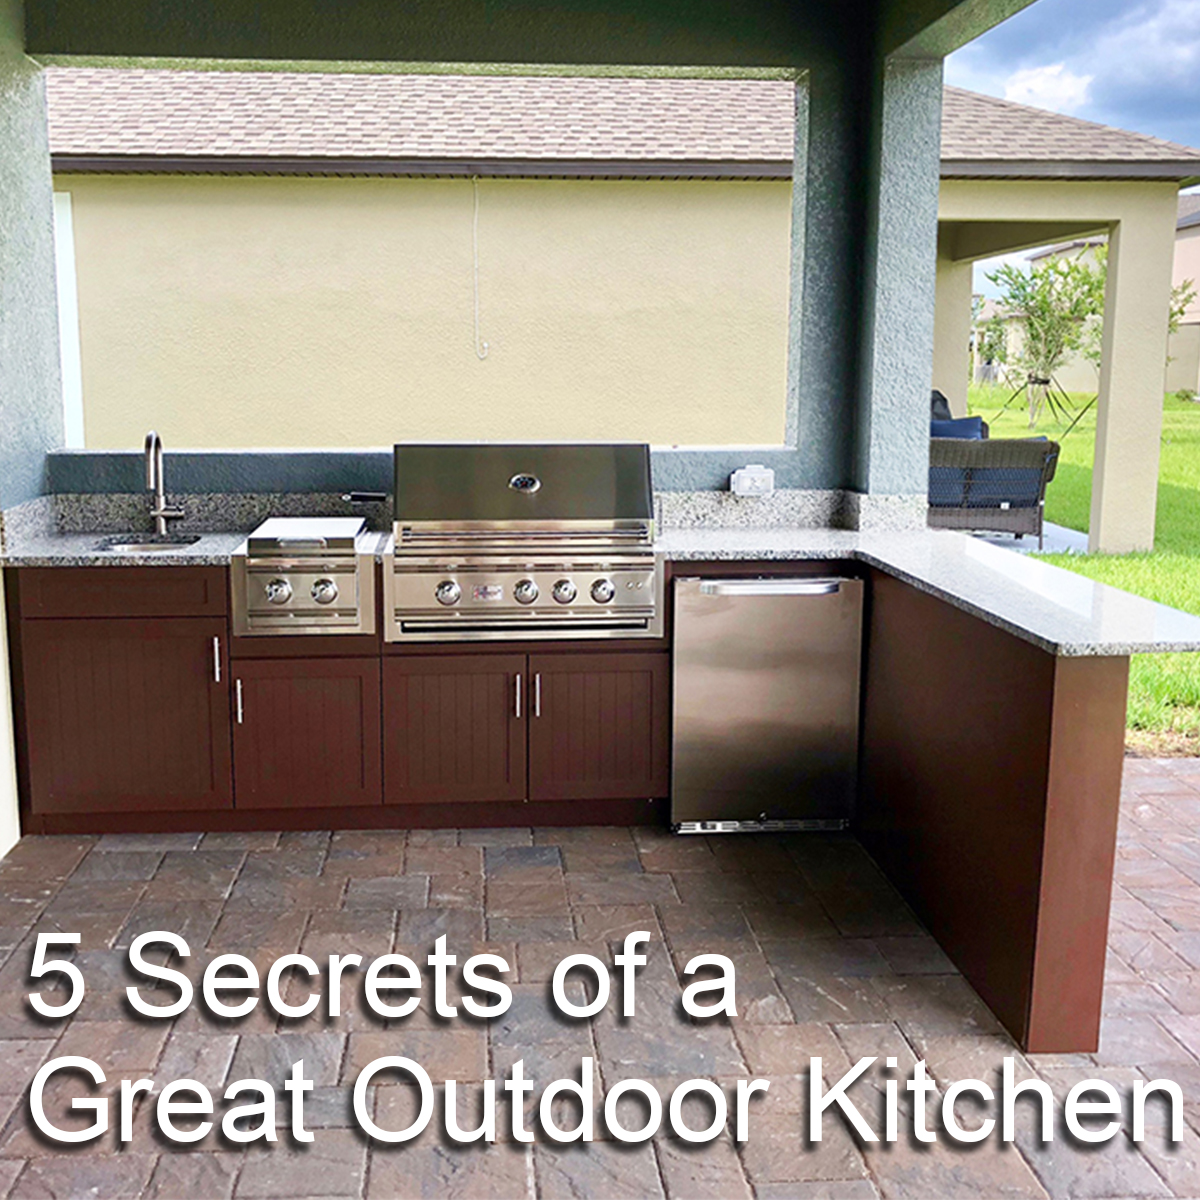 5 Secrets of a Great Outdoor Kitchen